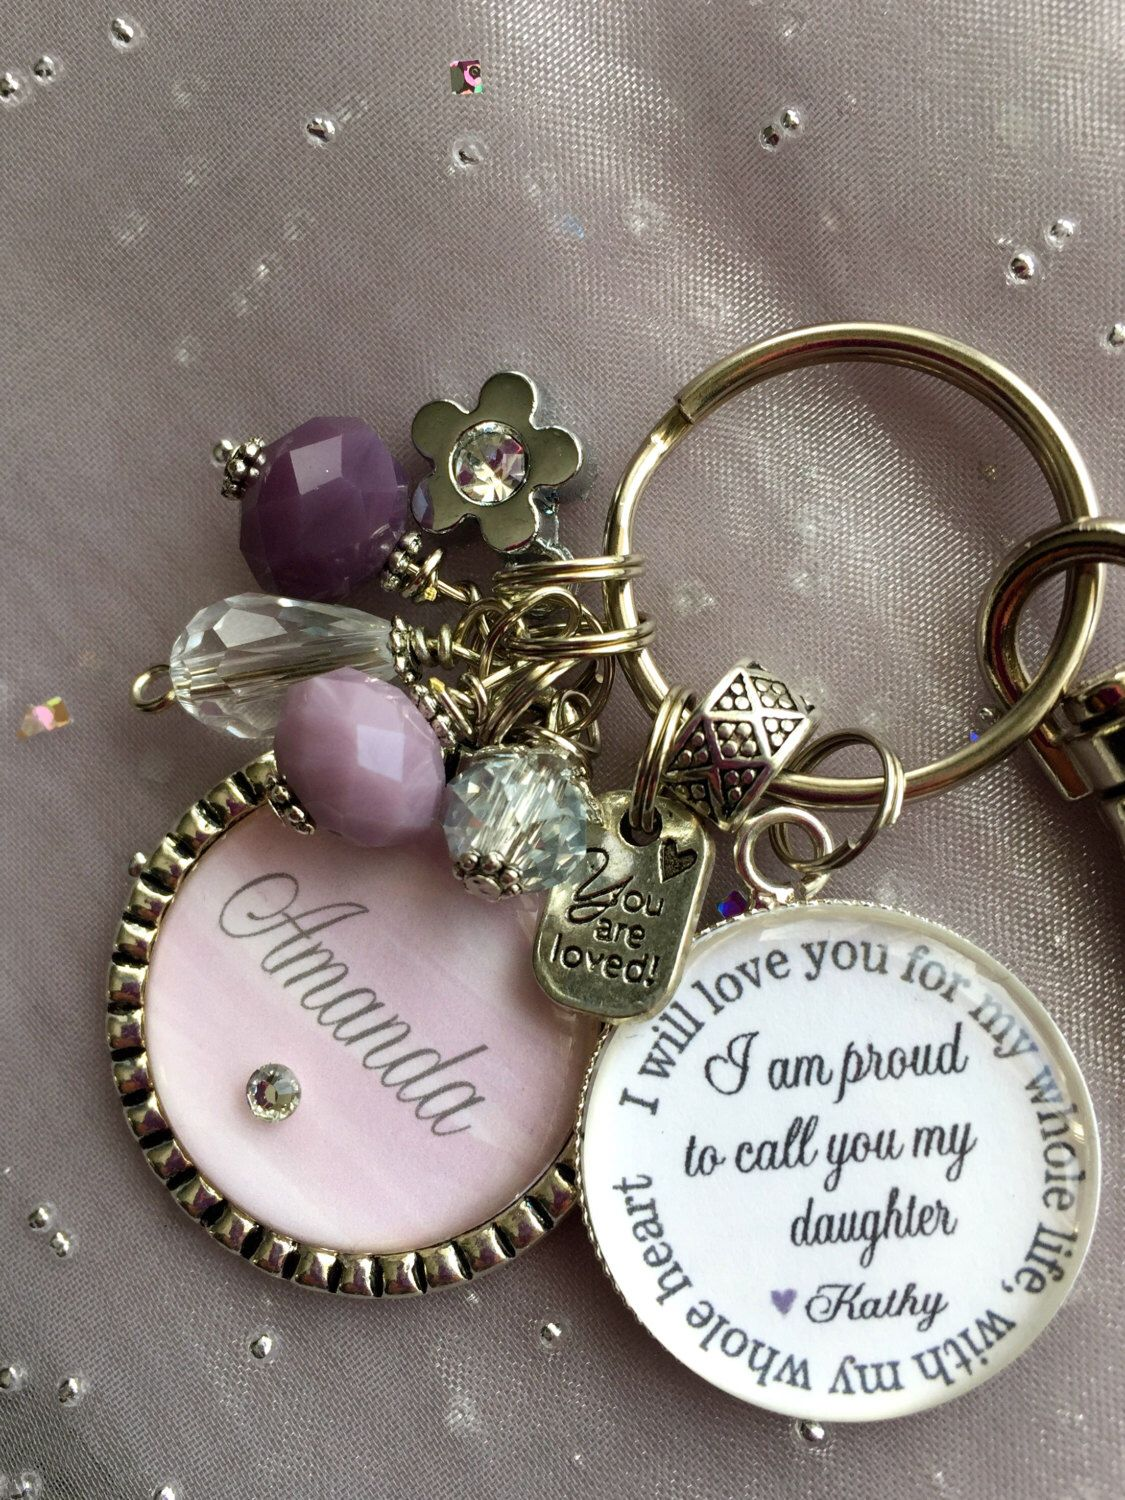 Personalized step daughter gift charm necklace keychain